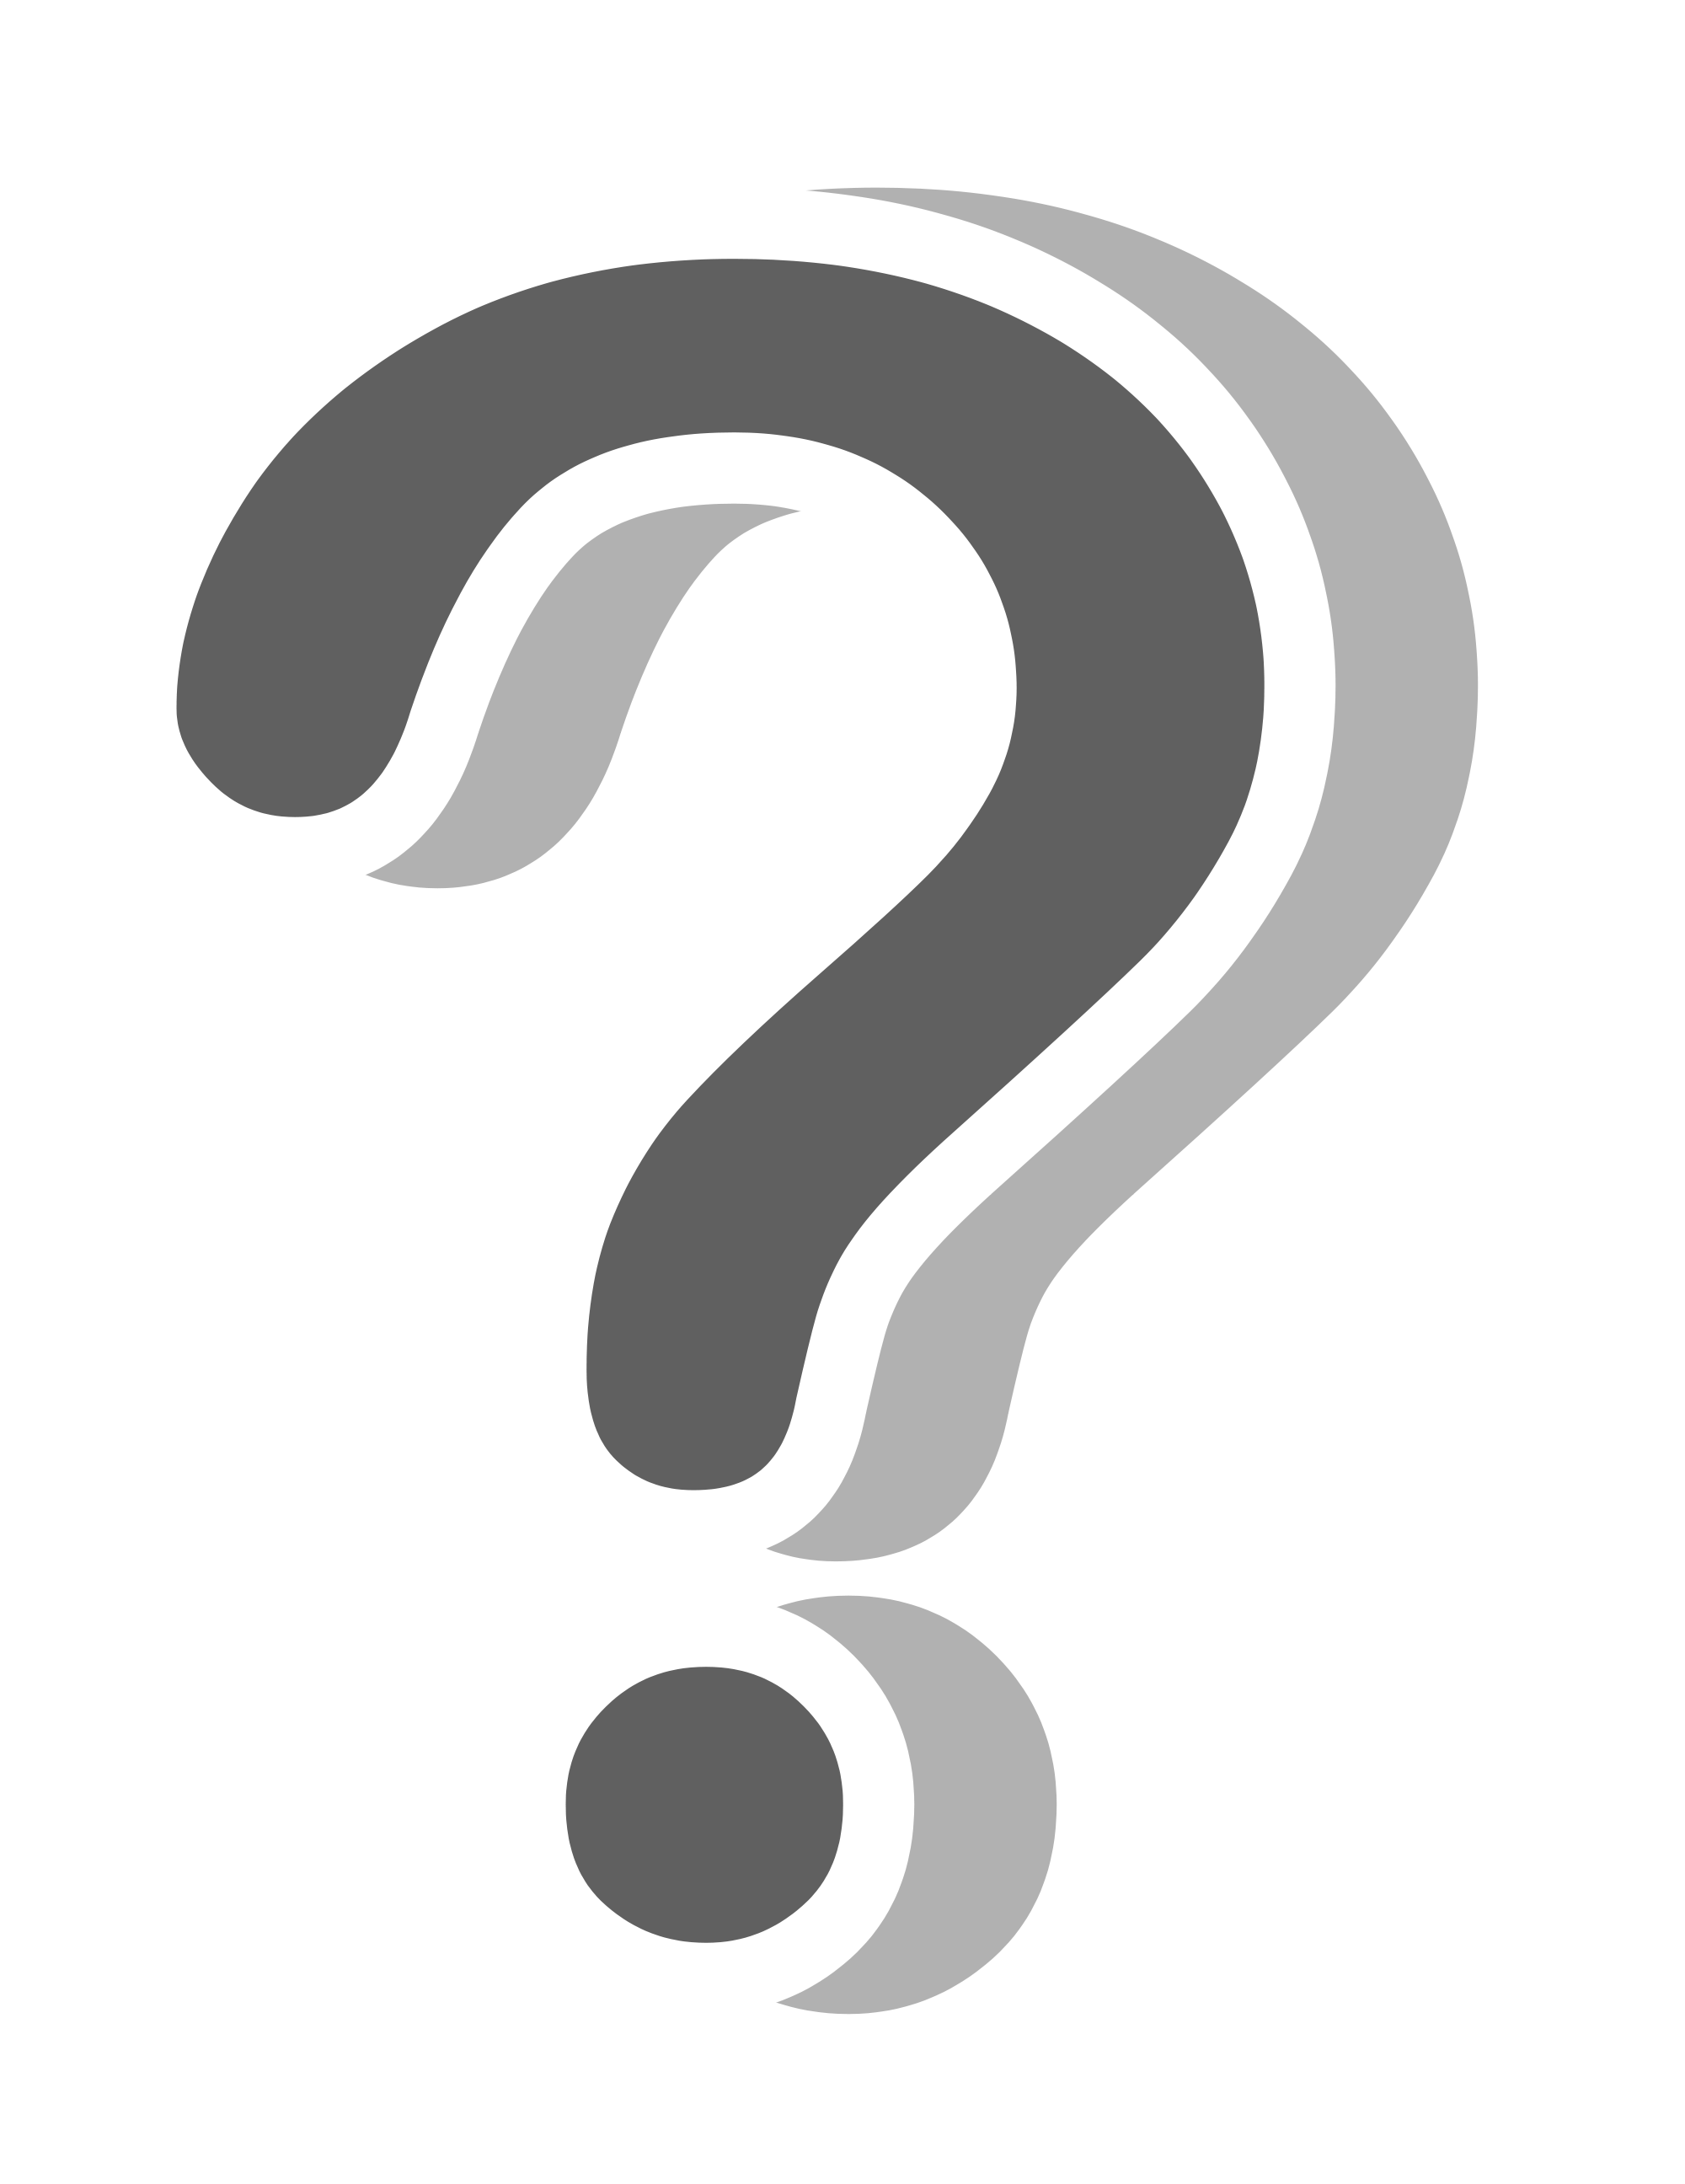 Image 8838 Question Mark Png Nickelodeon Fanon Wiki